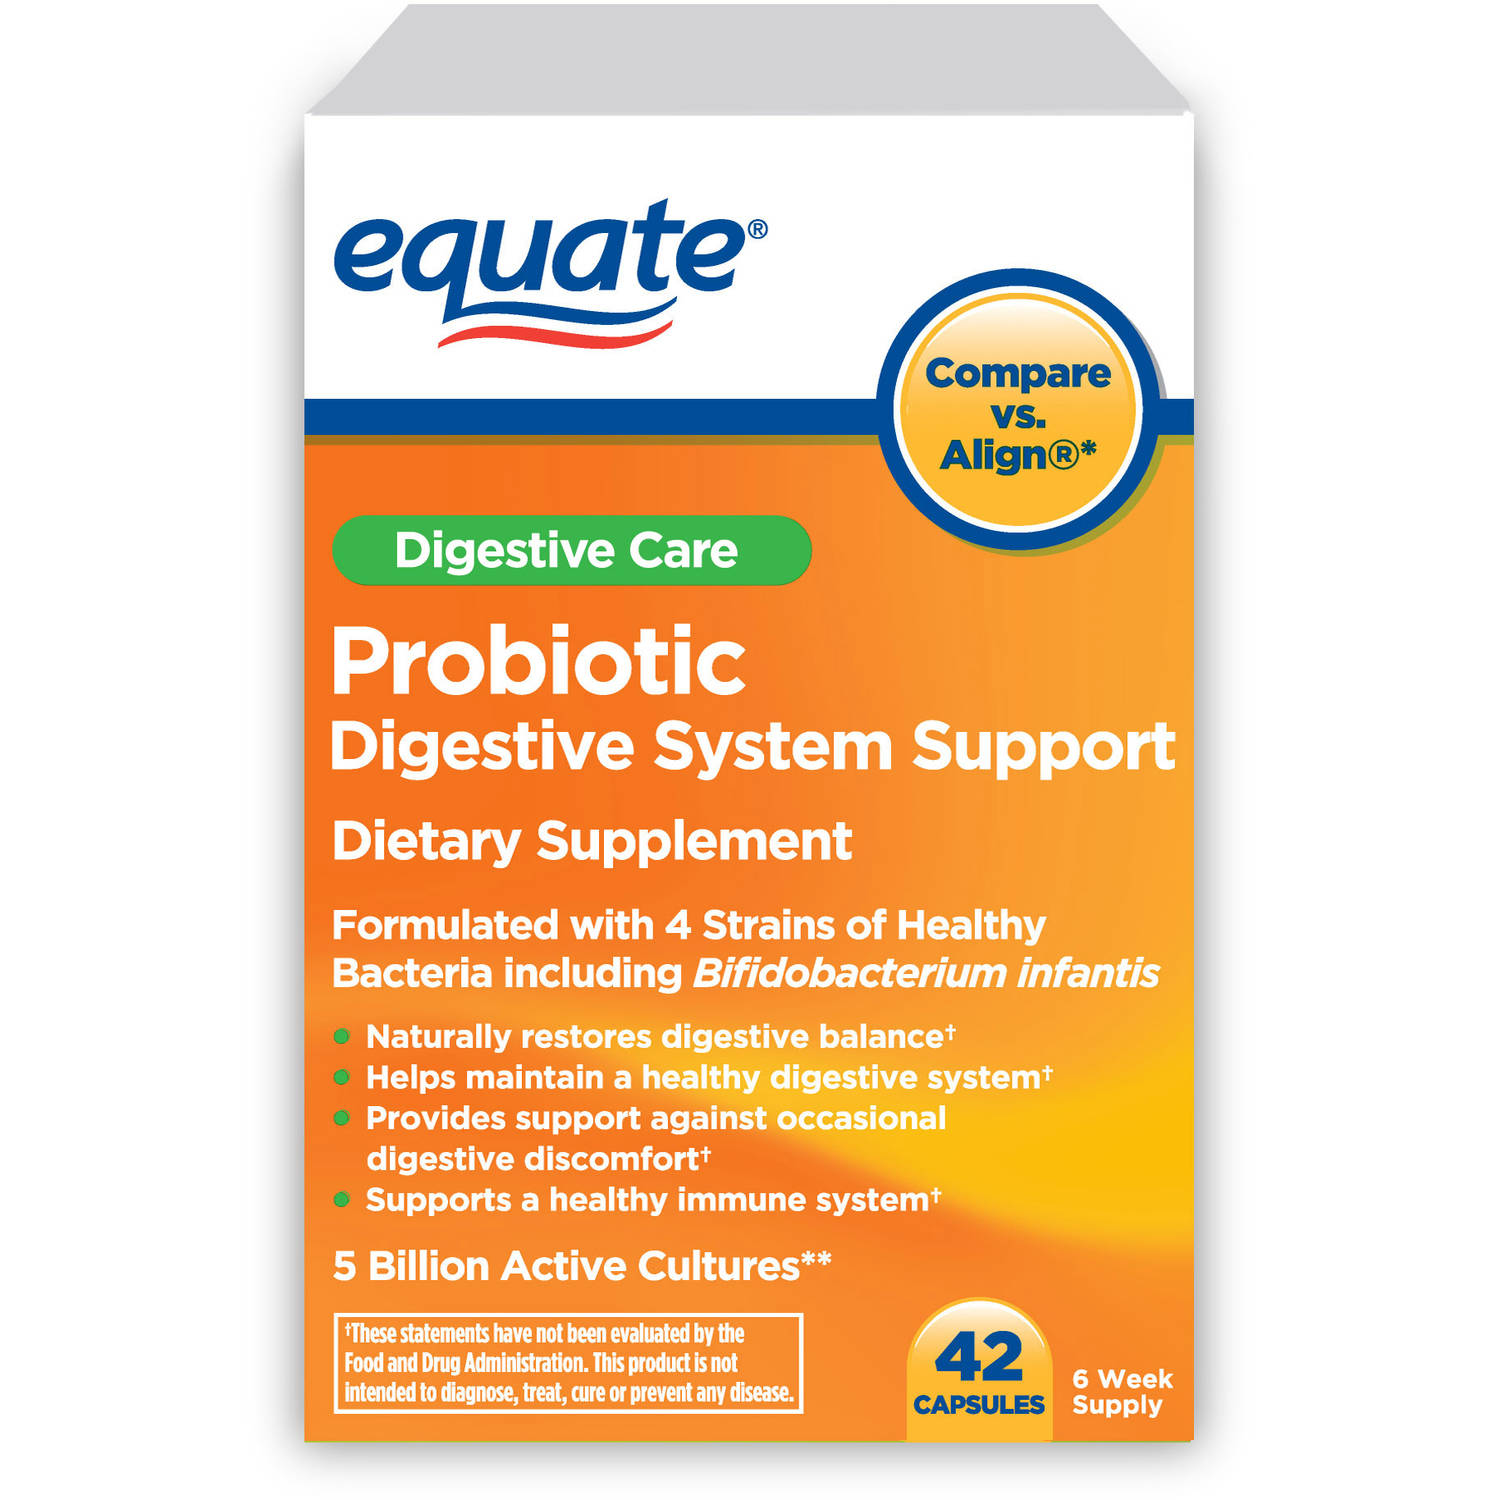 Equate Probiotic Digestive System Support Capsules, 42 count